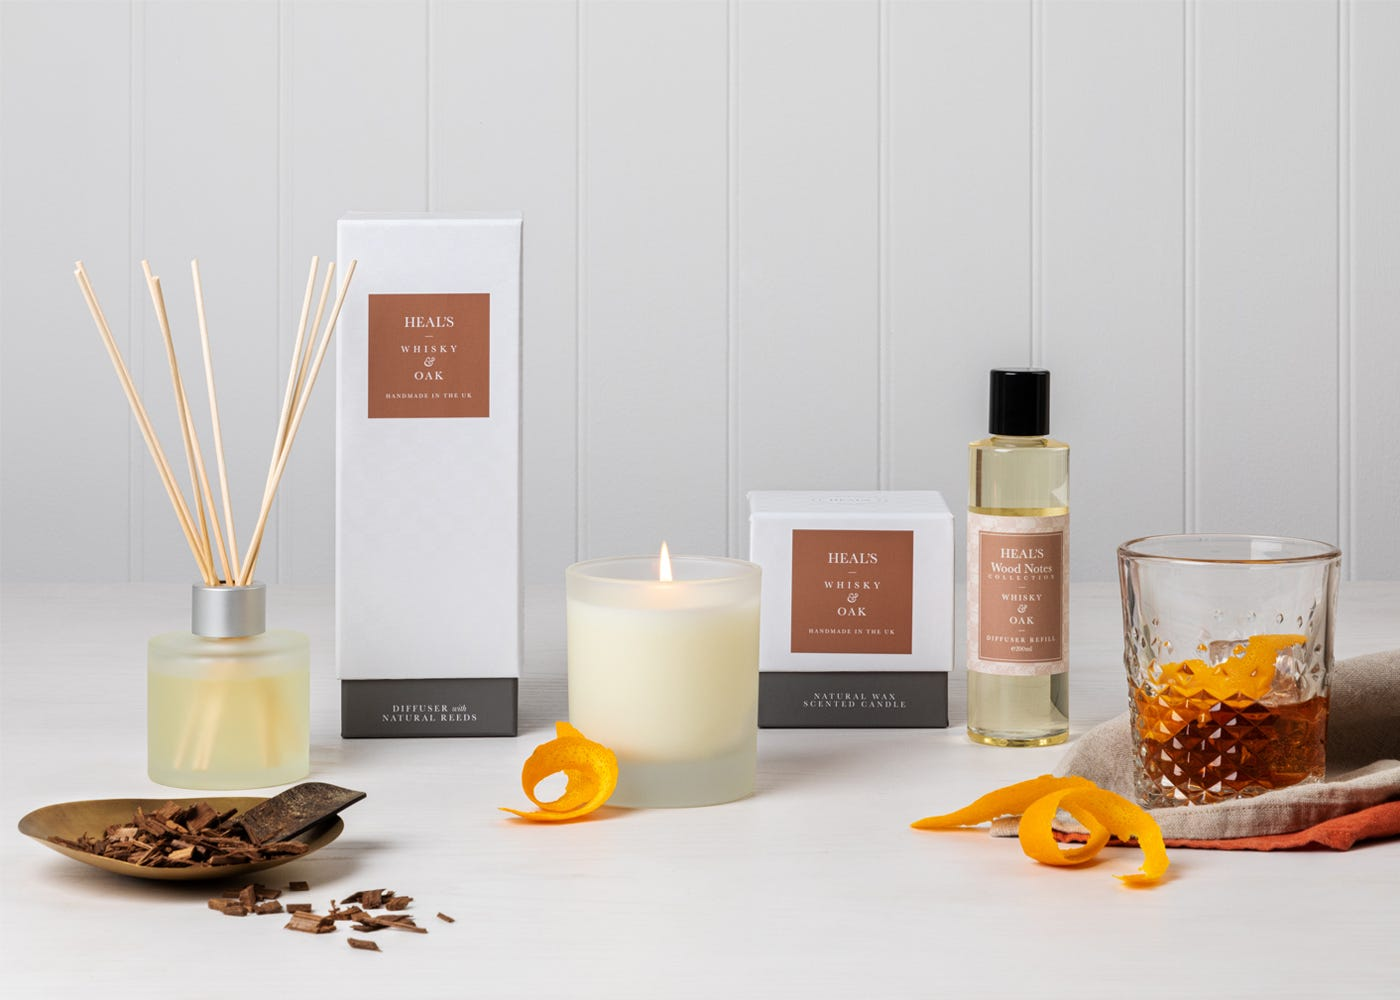 Whisky and Oak fragrance collection